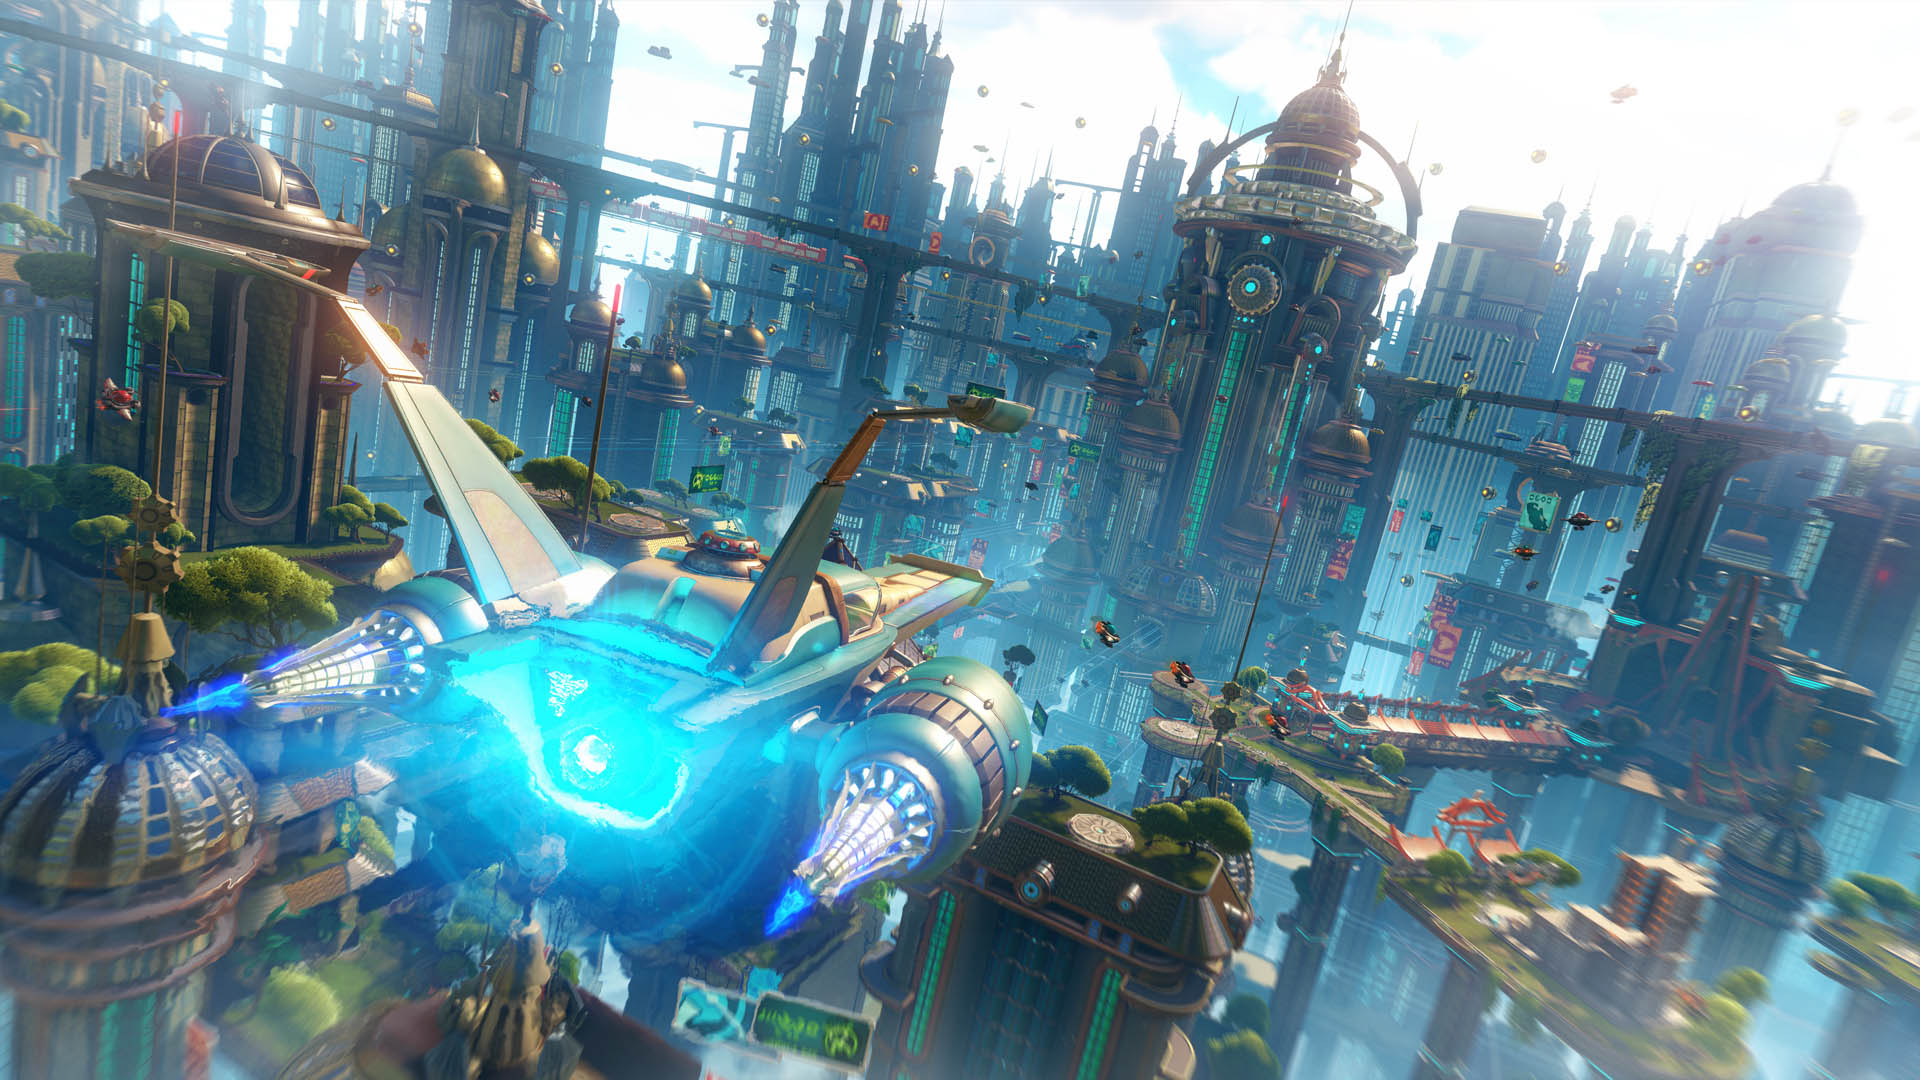 Ratchet and Clank Remaster